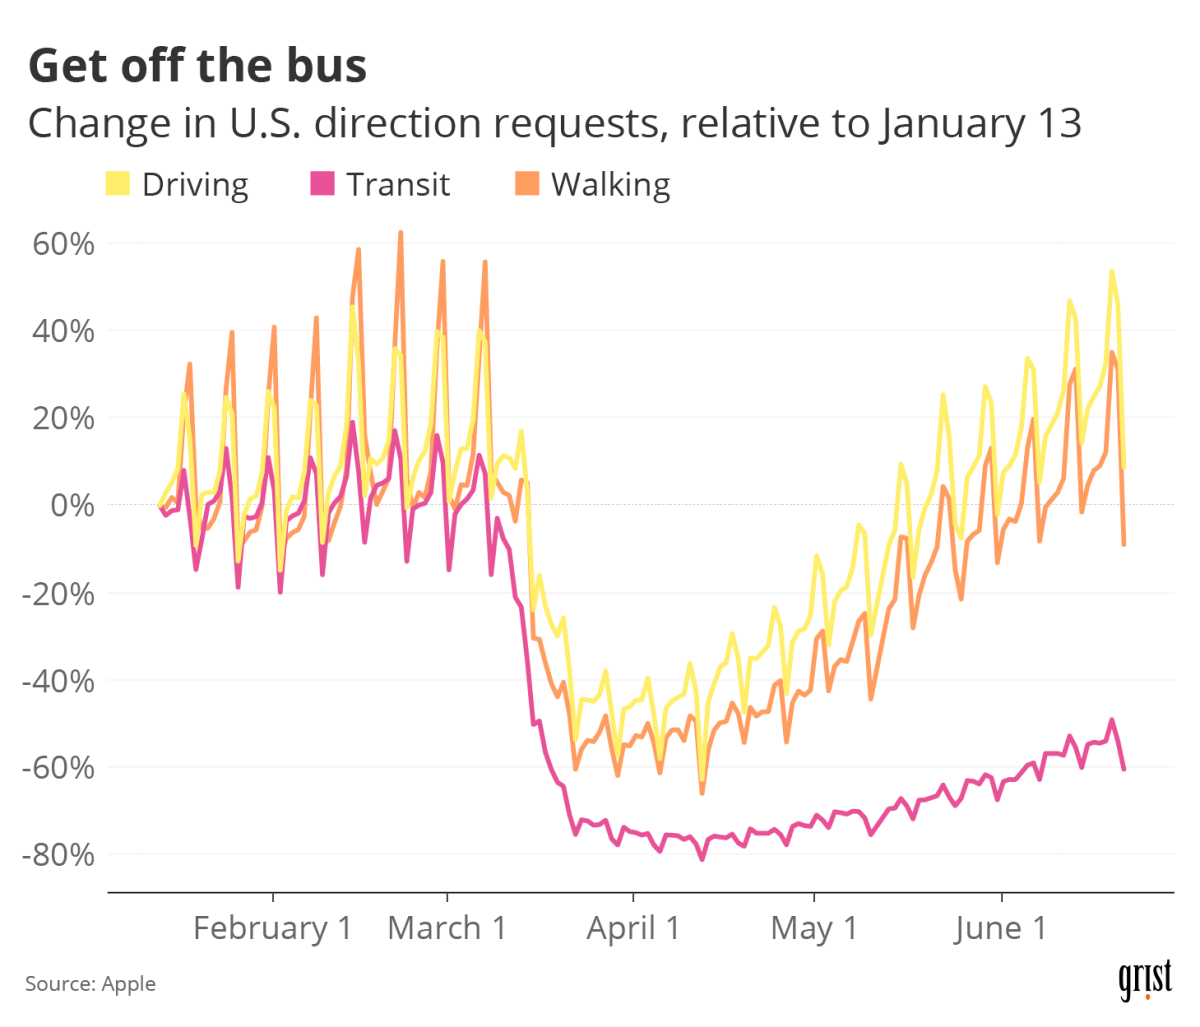 A line chart showing the percent change in U.S. direction requests through Apple Maps, relative to January 13, 2020. Between January and June, driving and walking requests fell and rebounded, but transit requests have yet to recover.